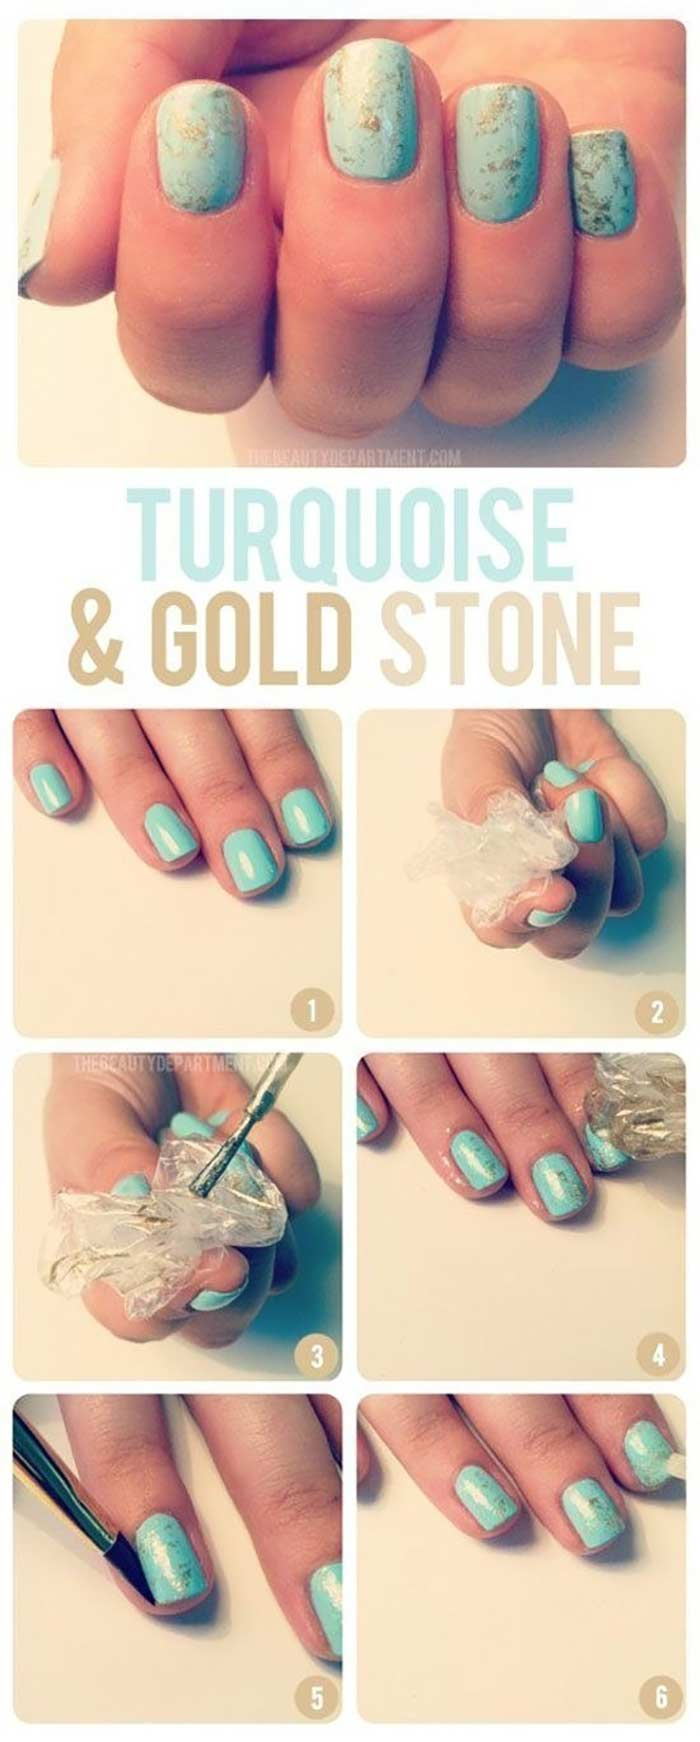 Top 60 easy nail designs for short nails 2018 update turquoise and gold nails cute nail designs for short nails prinsesfo Image collections